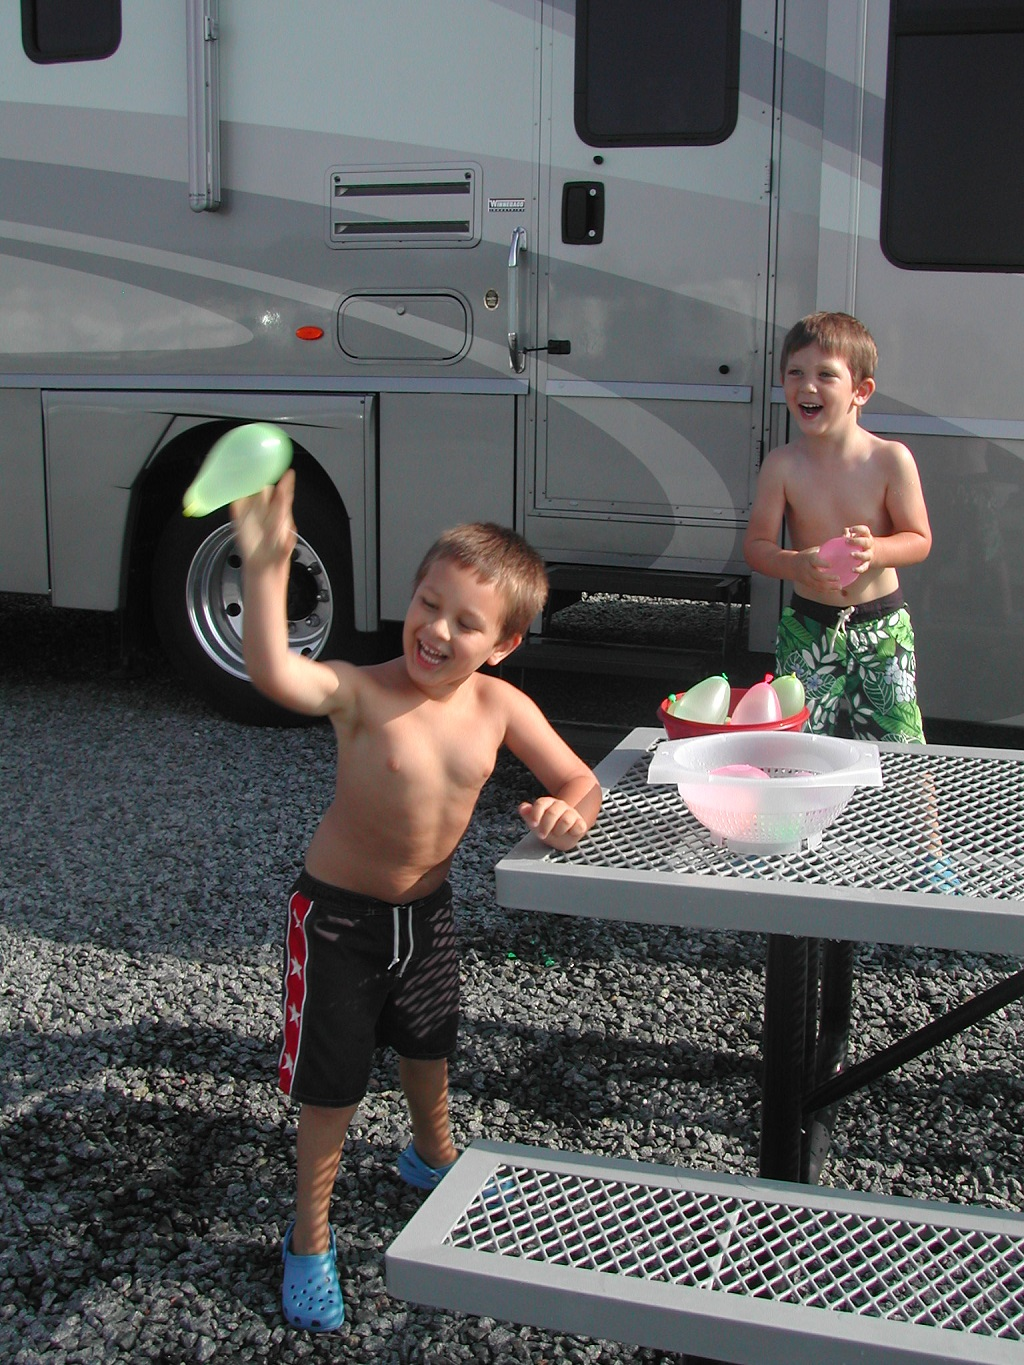 Two boys playing with water balloons outside motorhome.